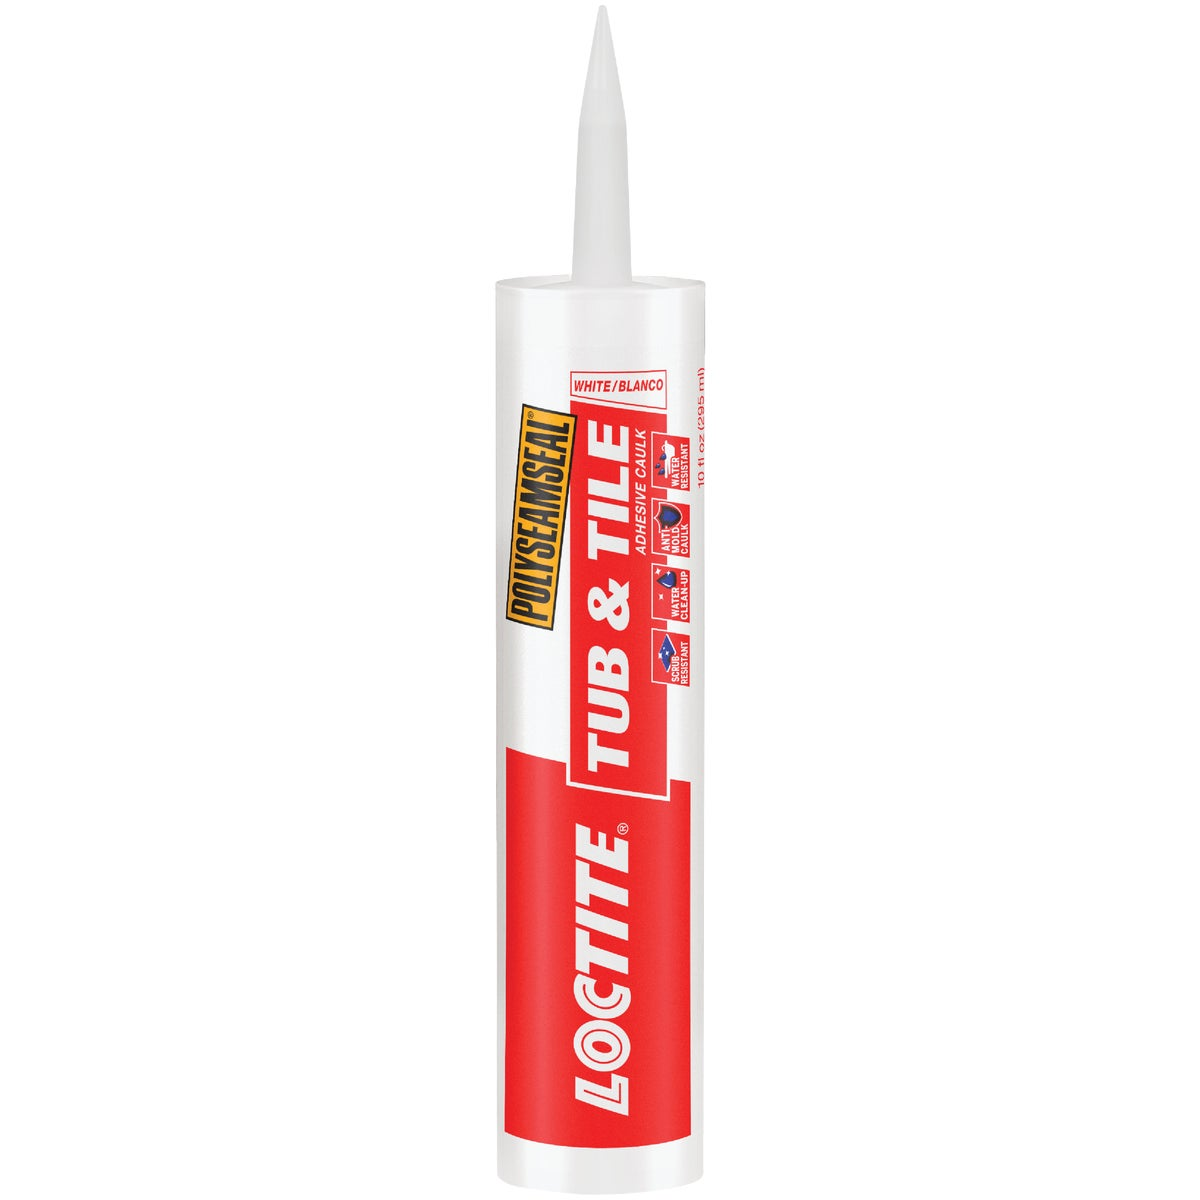 10OZ WHT TUB&TILE CAULK - 1700022 by Henkel Corporation